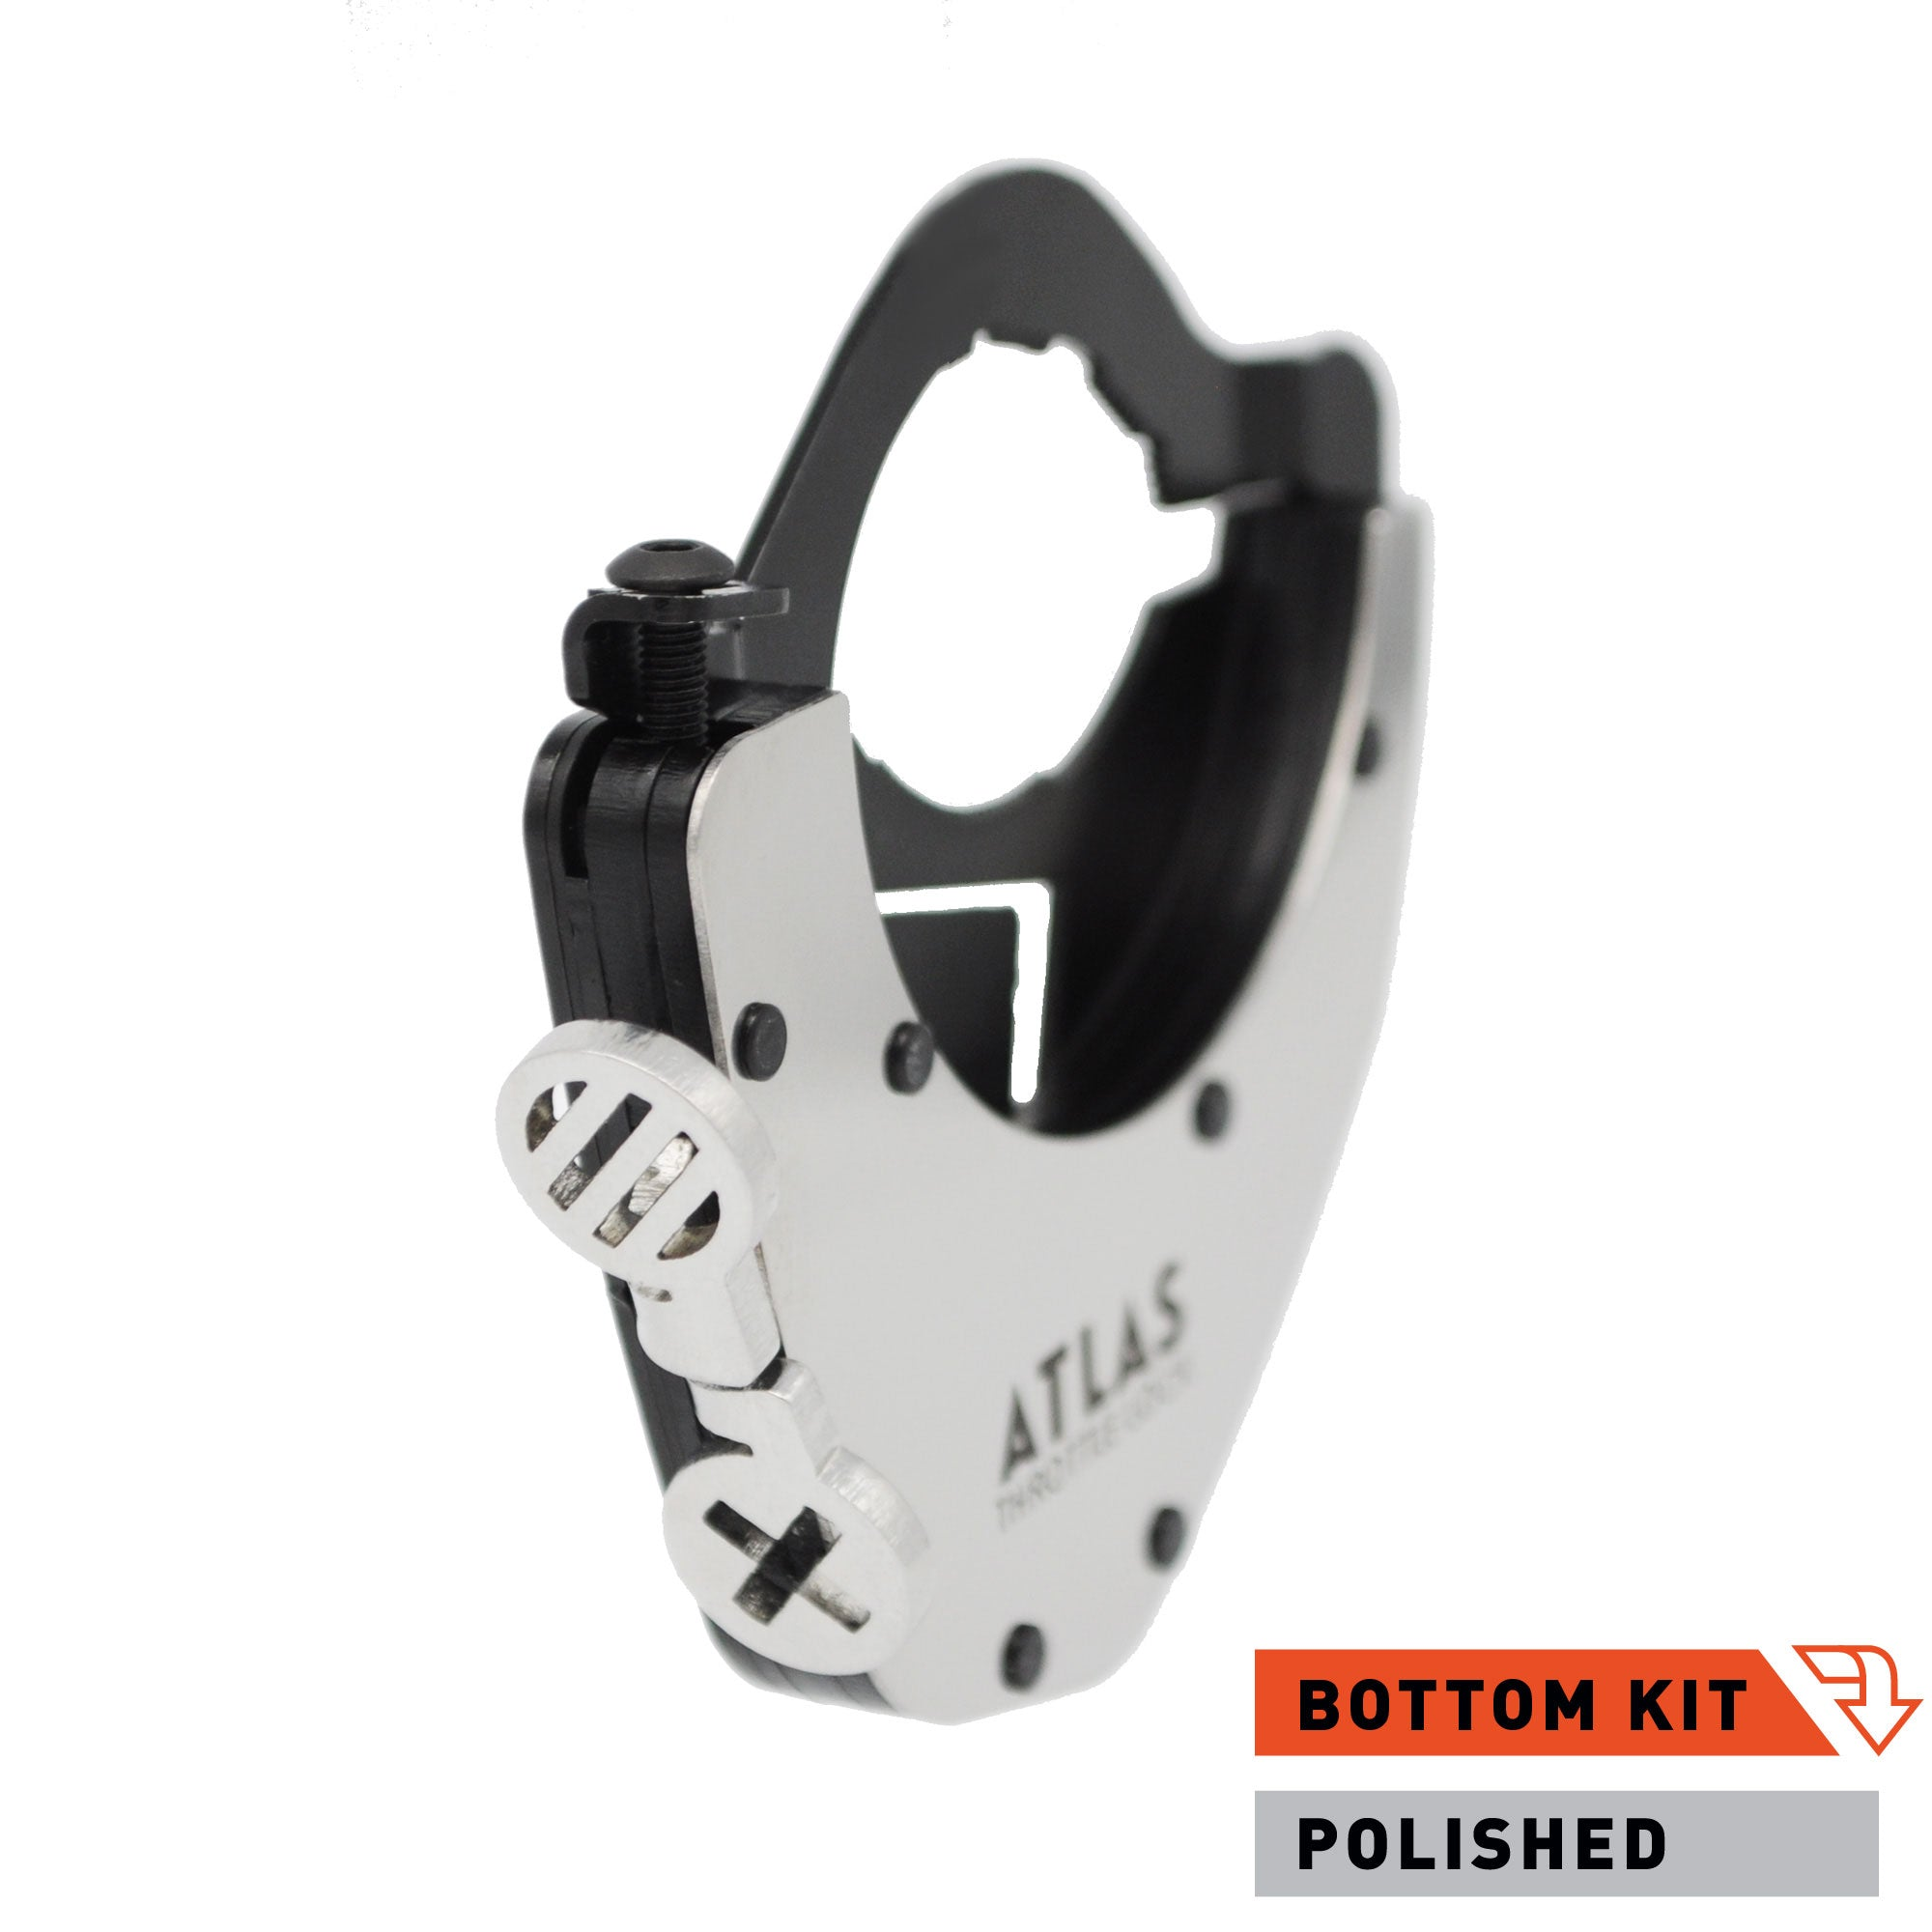 Horex Motorcycles - ATLAS Throttle Lock